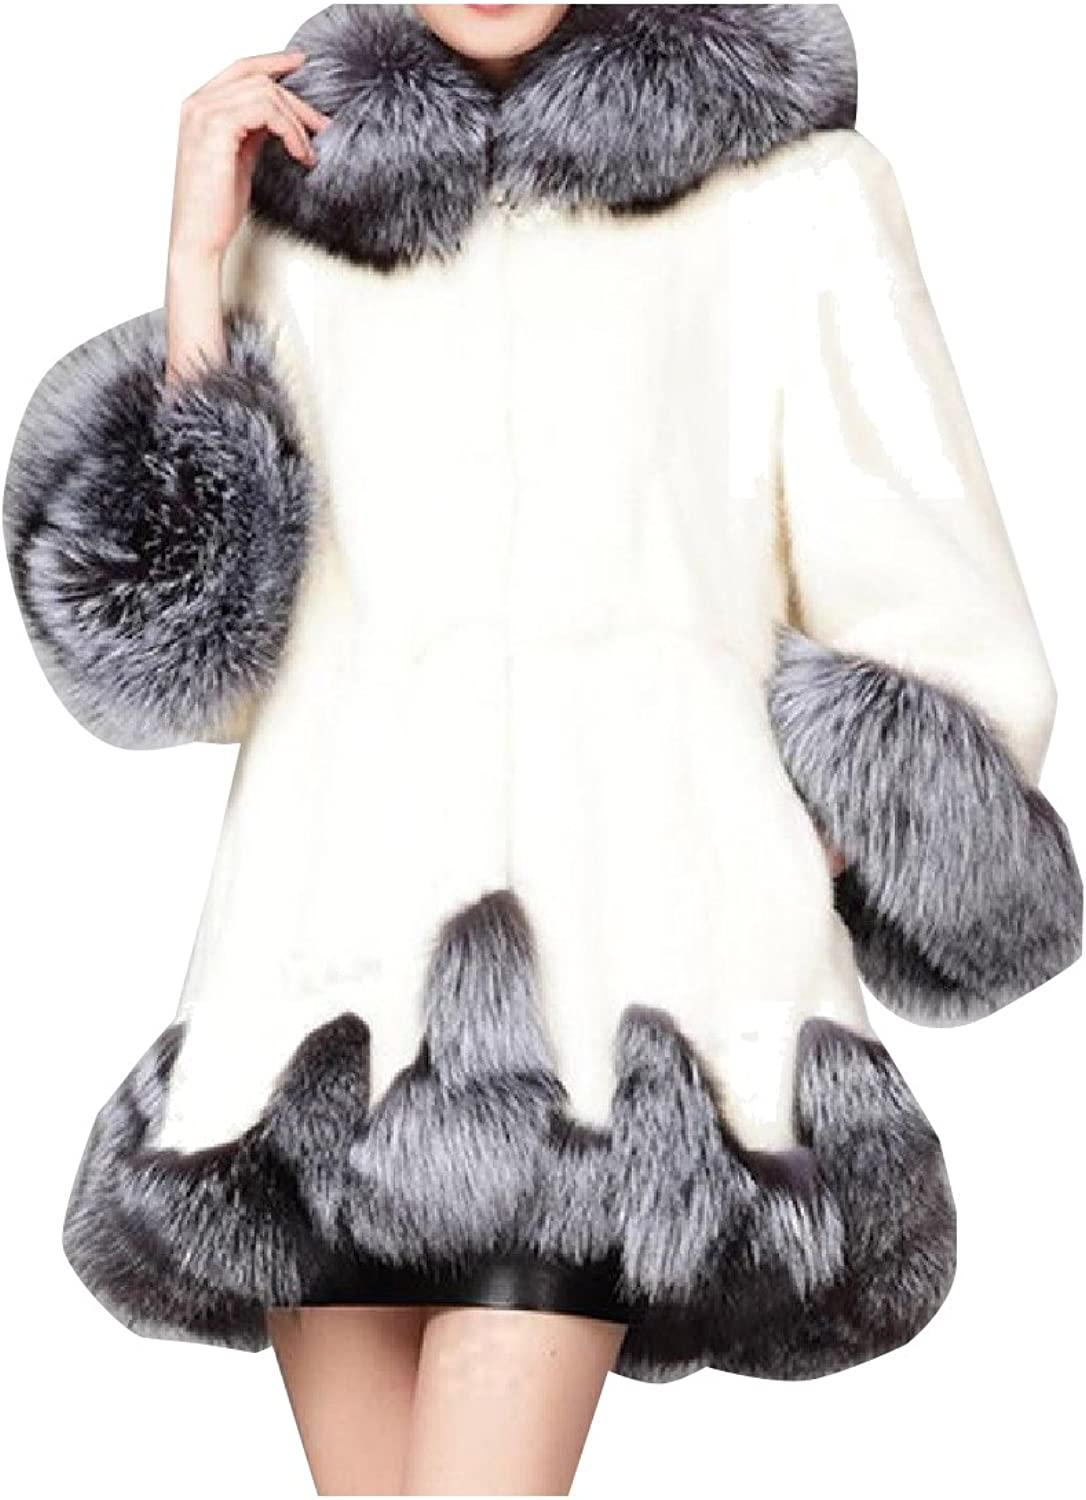 Tootless Women's LongSleeve Fluffy Faux Fur Hood Warm Tops Outwear